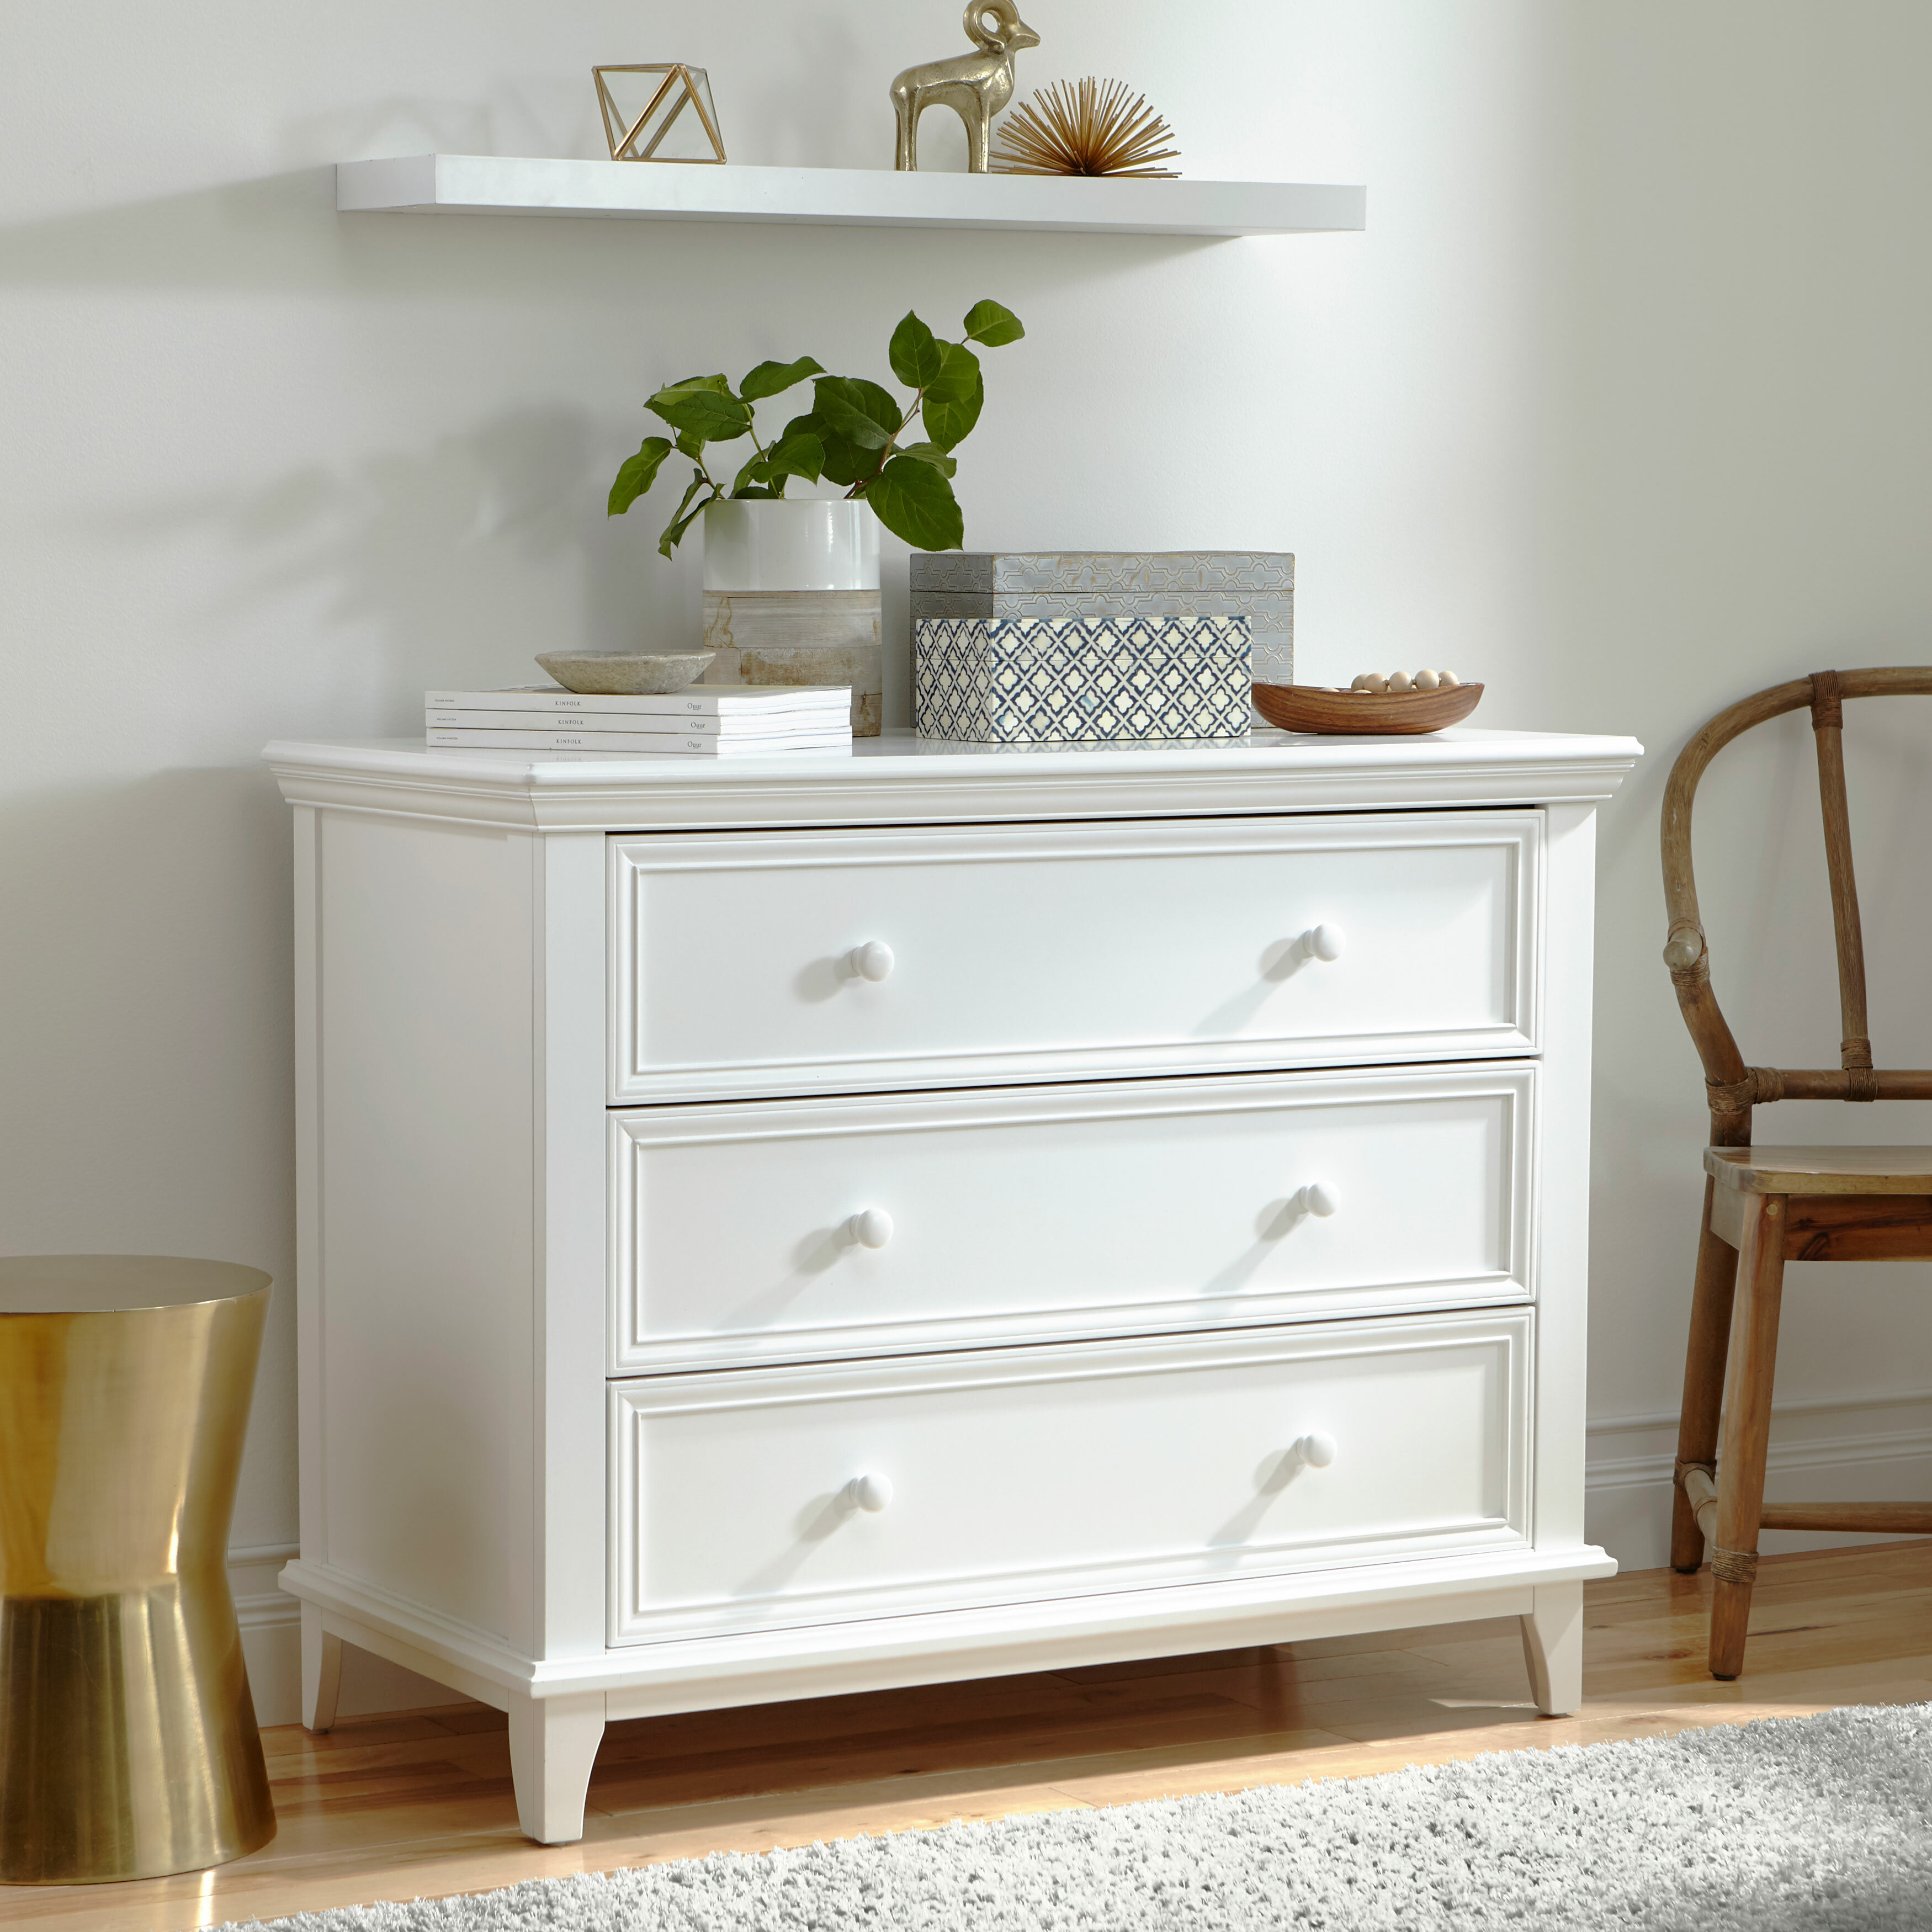 dresser davinci furniture luxurious buy ah and kalani baby picture canada davinchi drawer cri da changing convertible in cheap combo table x vinci traditional crib target snazzy cribs